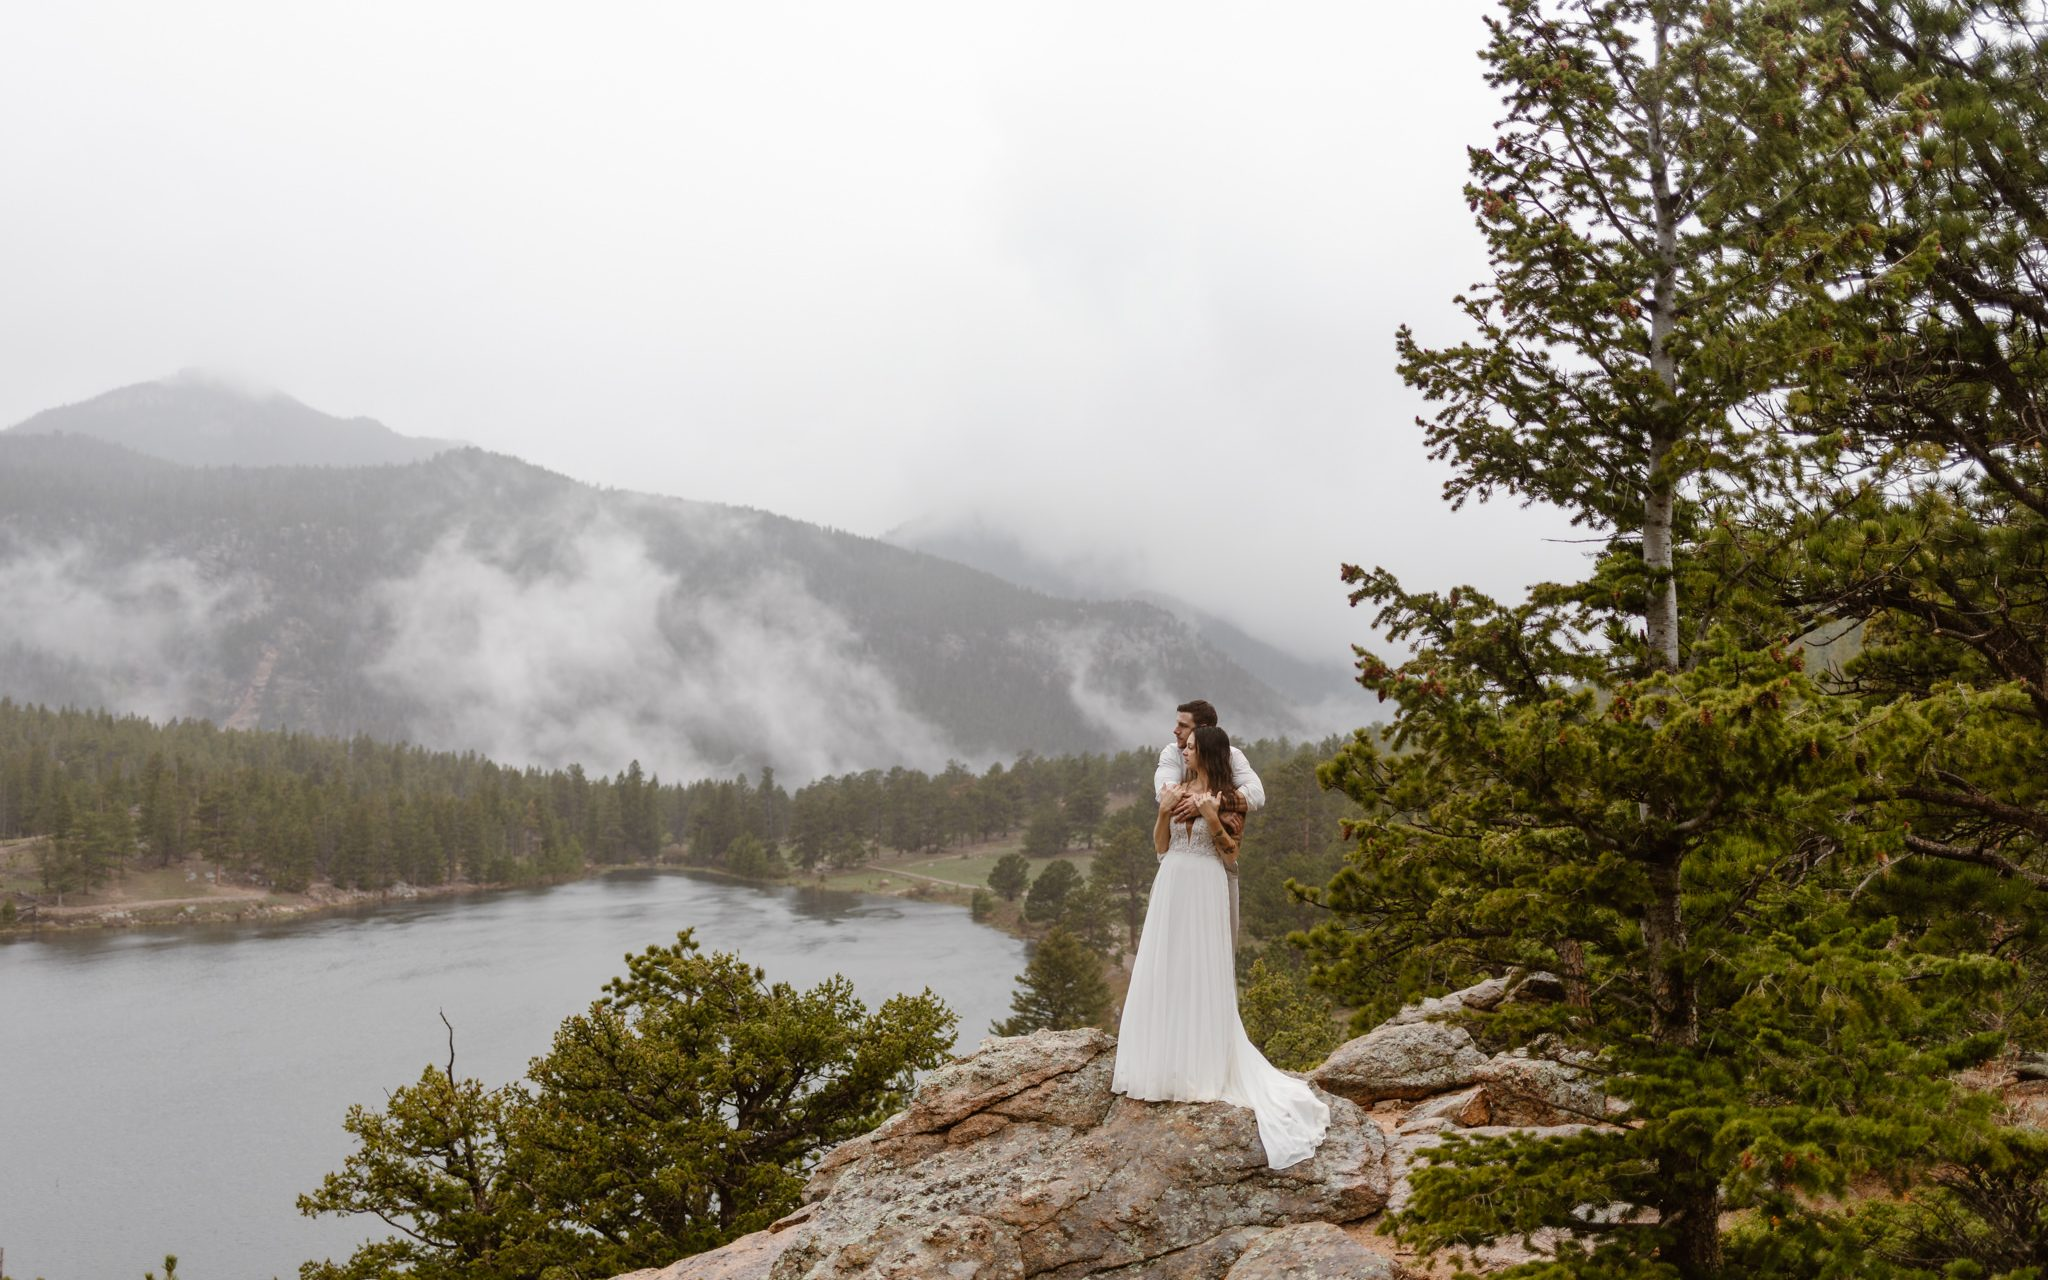 a couple wearing white and tan wedding clothes standing on top of a mountain ridge with a lake and evergreen forest in the background